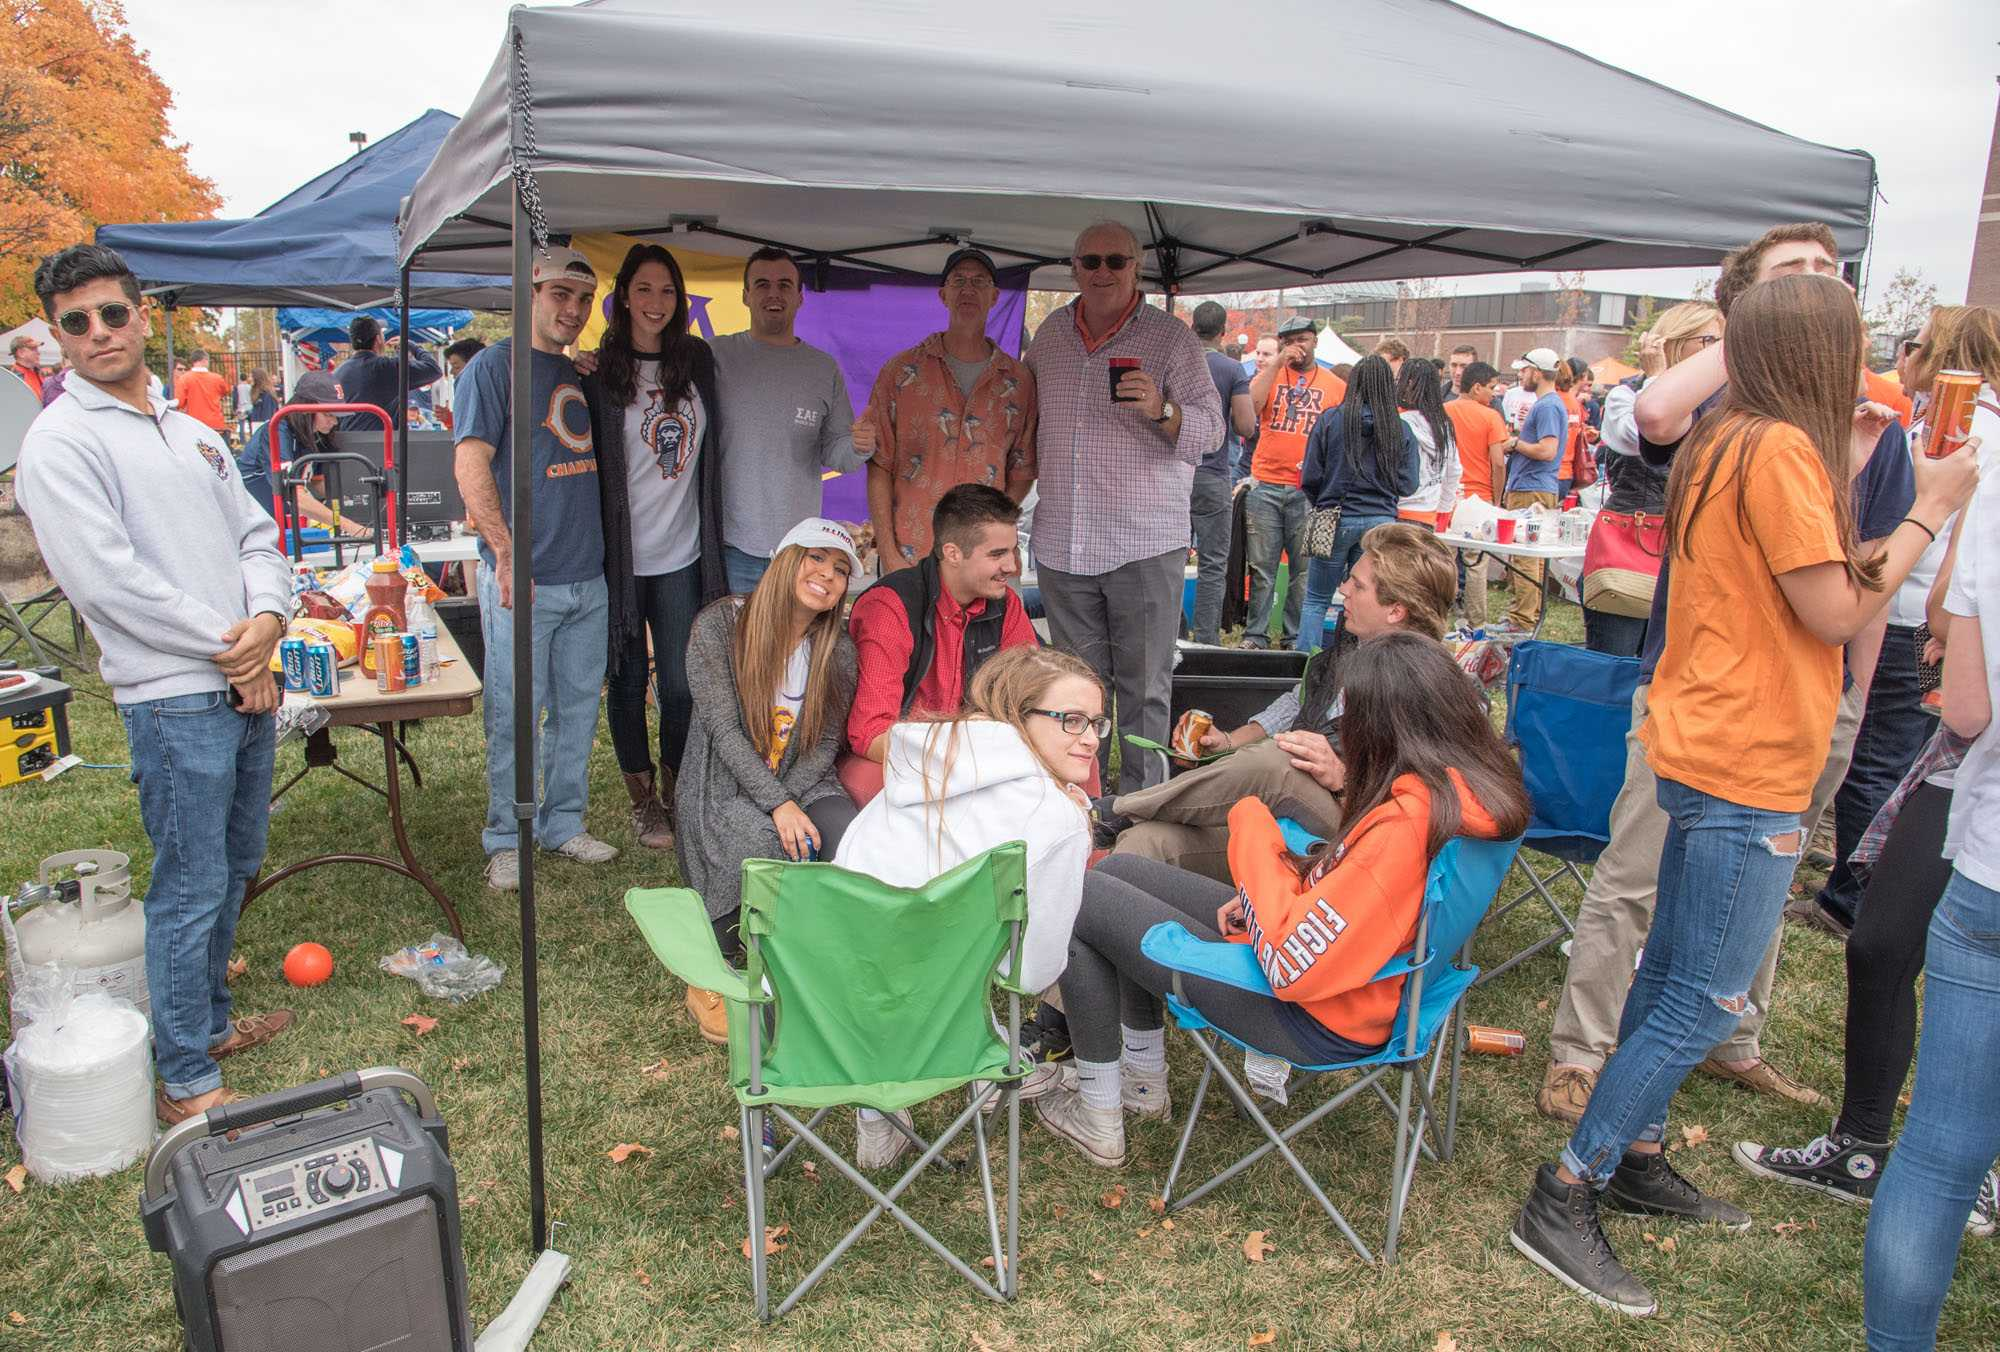 Past and current members of Sigma Alpha Epsilon celebrate Block at Grange Grove before a Homecoming football game.